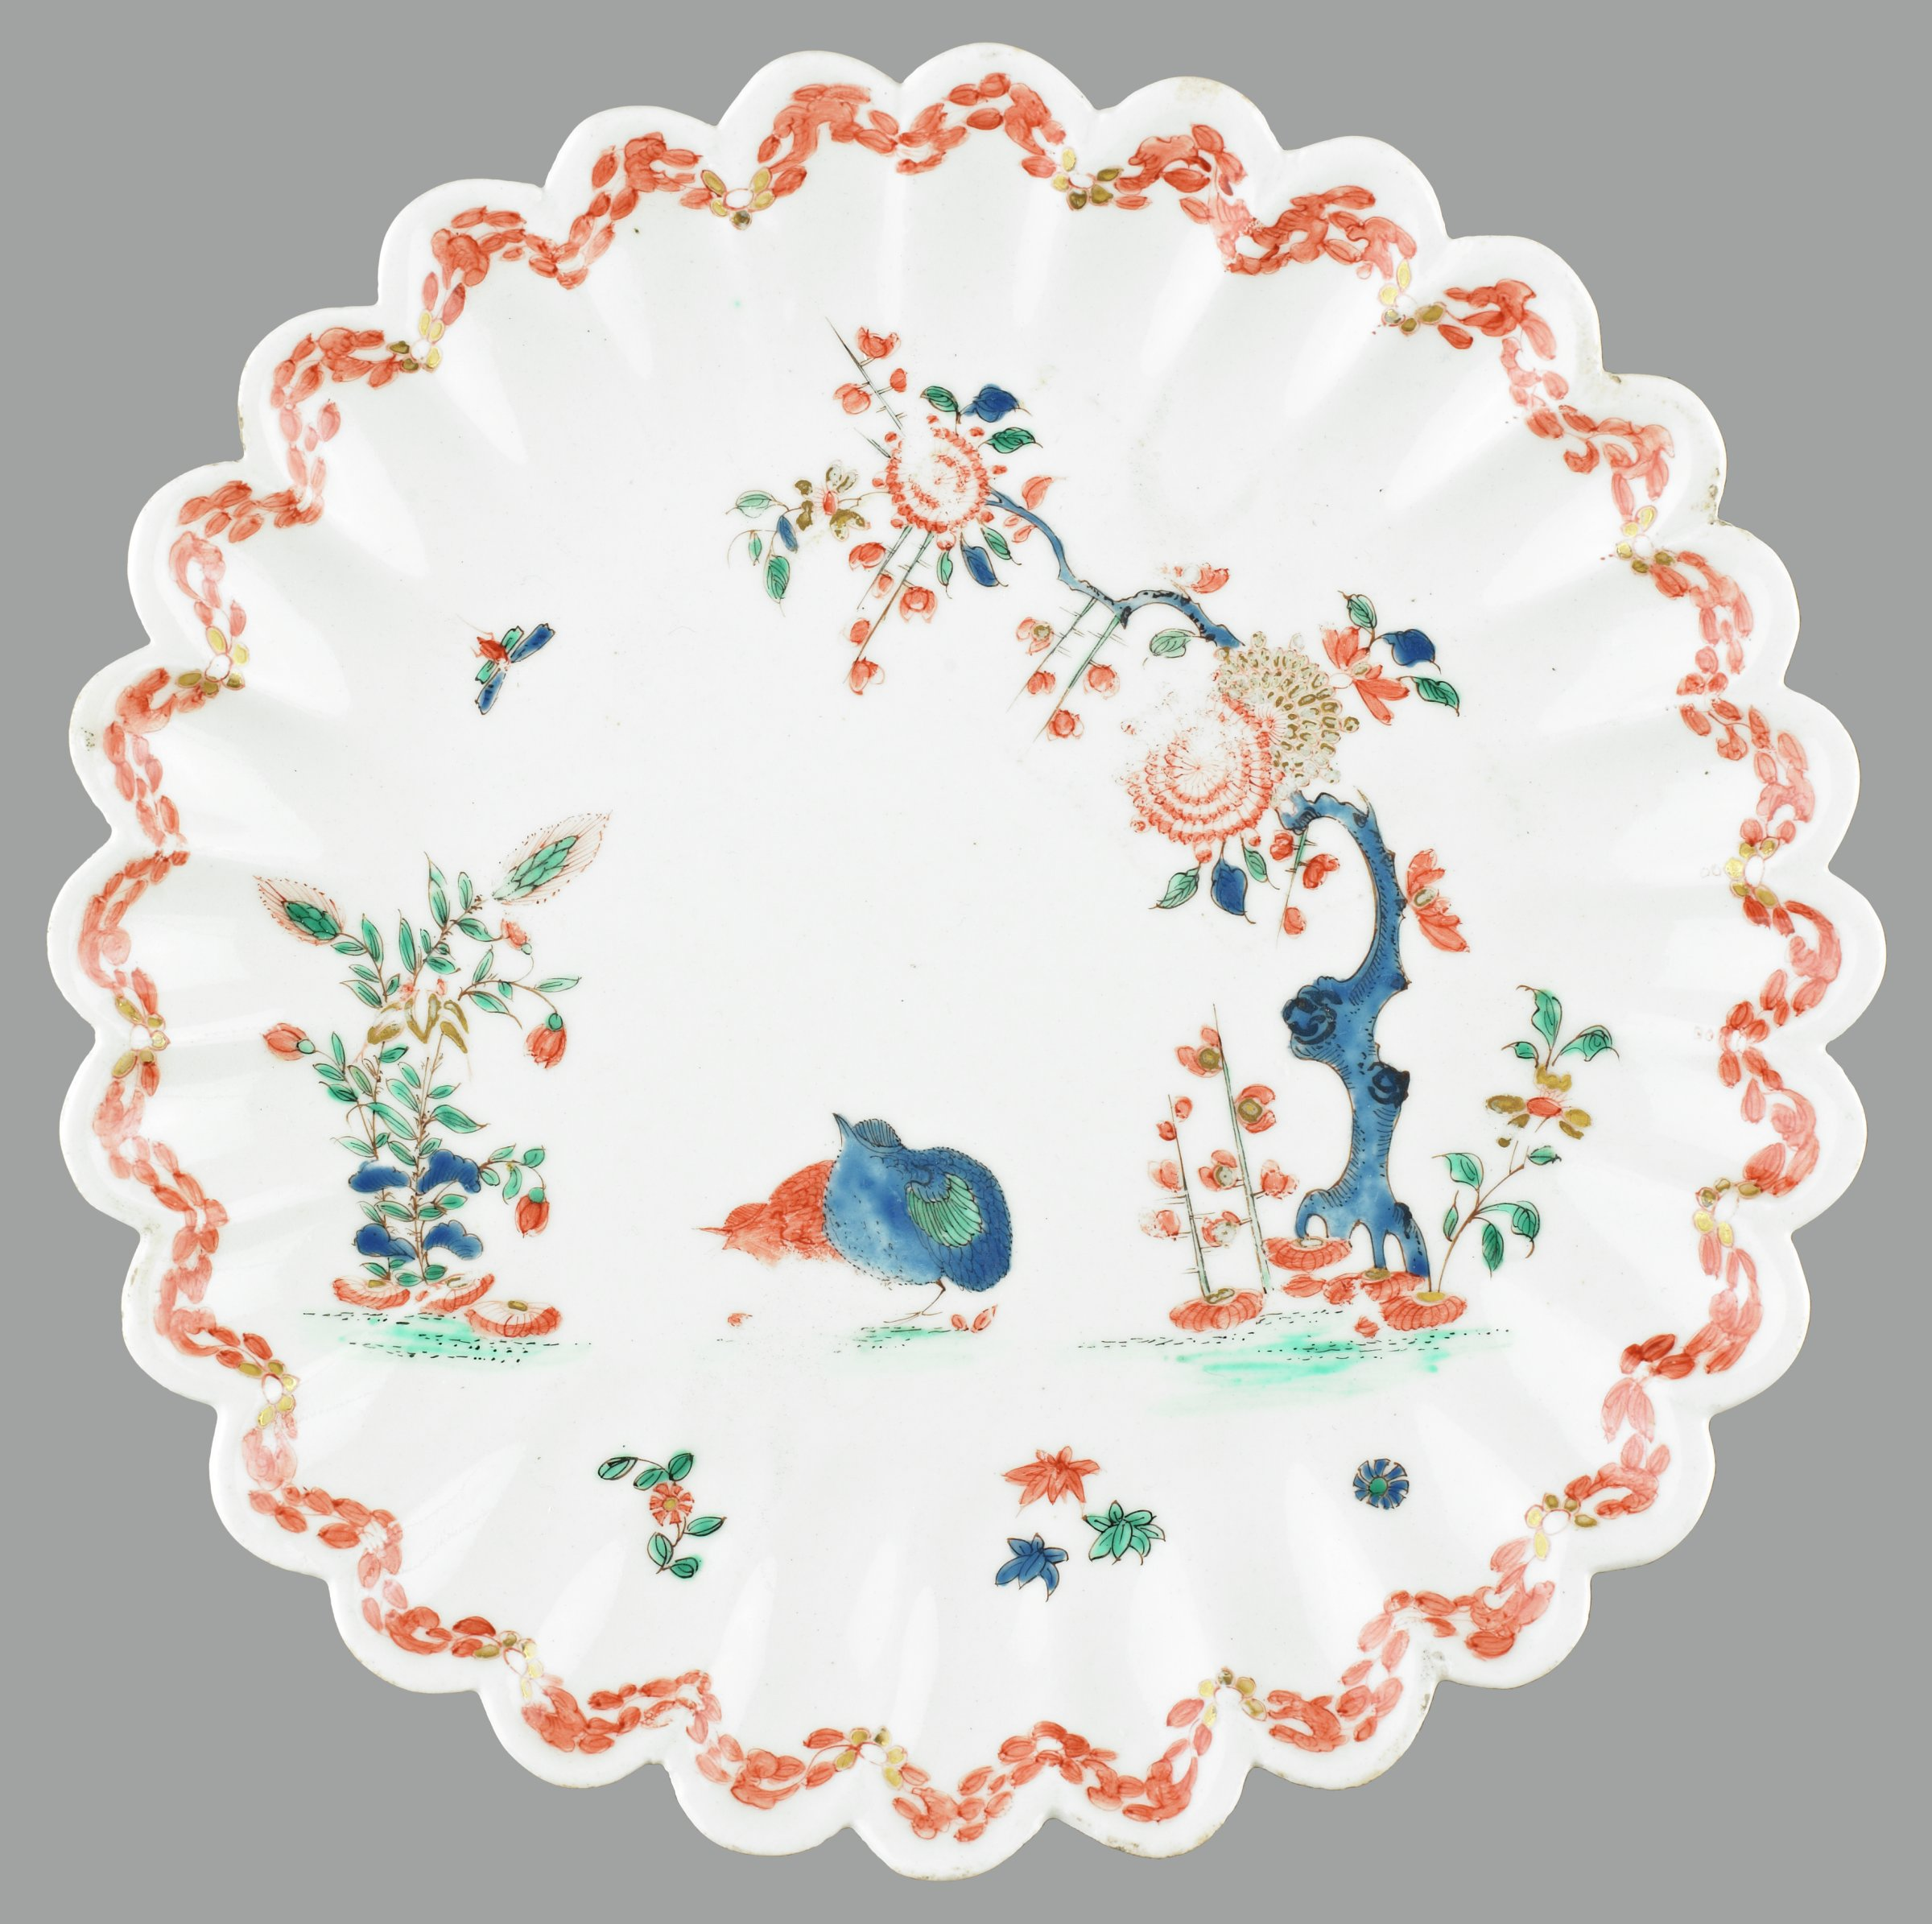 """Plate of white soft-paste porcelain with scalloped edges decorated with the Kakiemon """"Two Quail"""" pattern depicting a scene of two quails, one painted in iron red, and the other in blue with green tipped wing feathers, pecking at seeds beneath an arched prunus tree with blue painted trunk and iron-red and gilt decorated flowers in bloom, and facing a flowering shrub with large leaves, the edge with an iron-red meandering leaf border."""